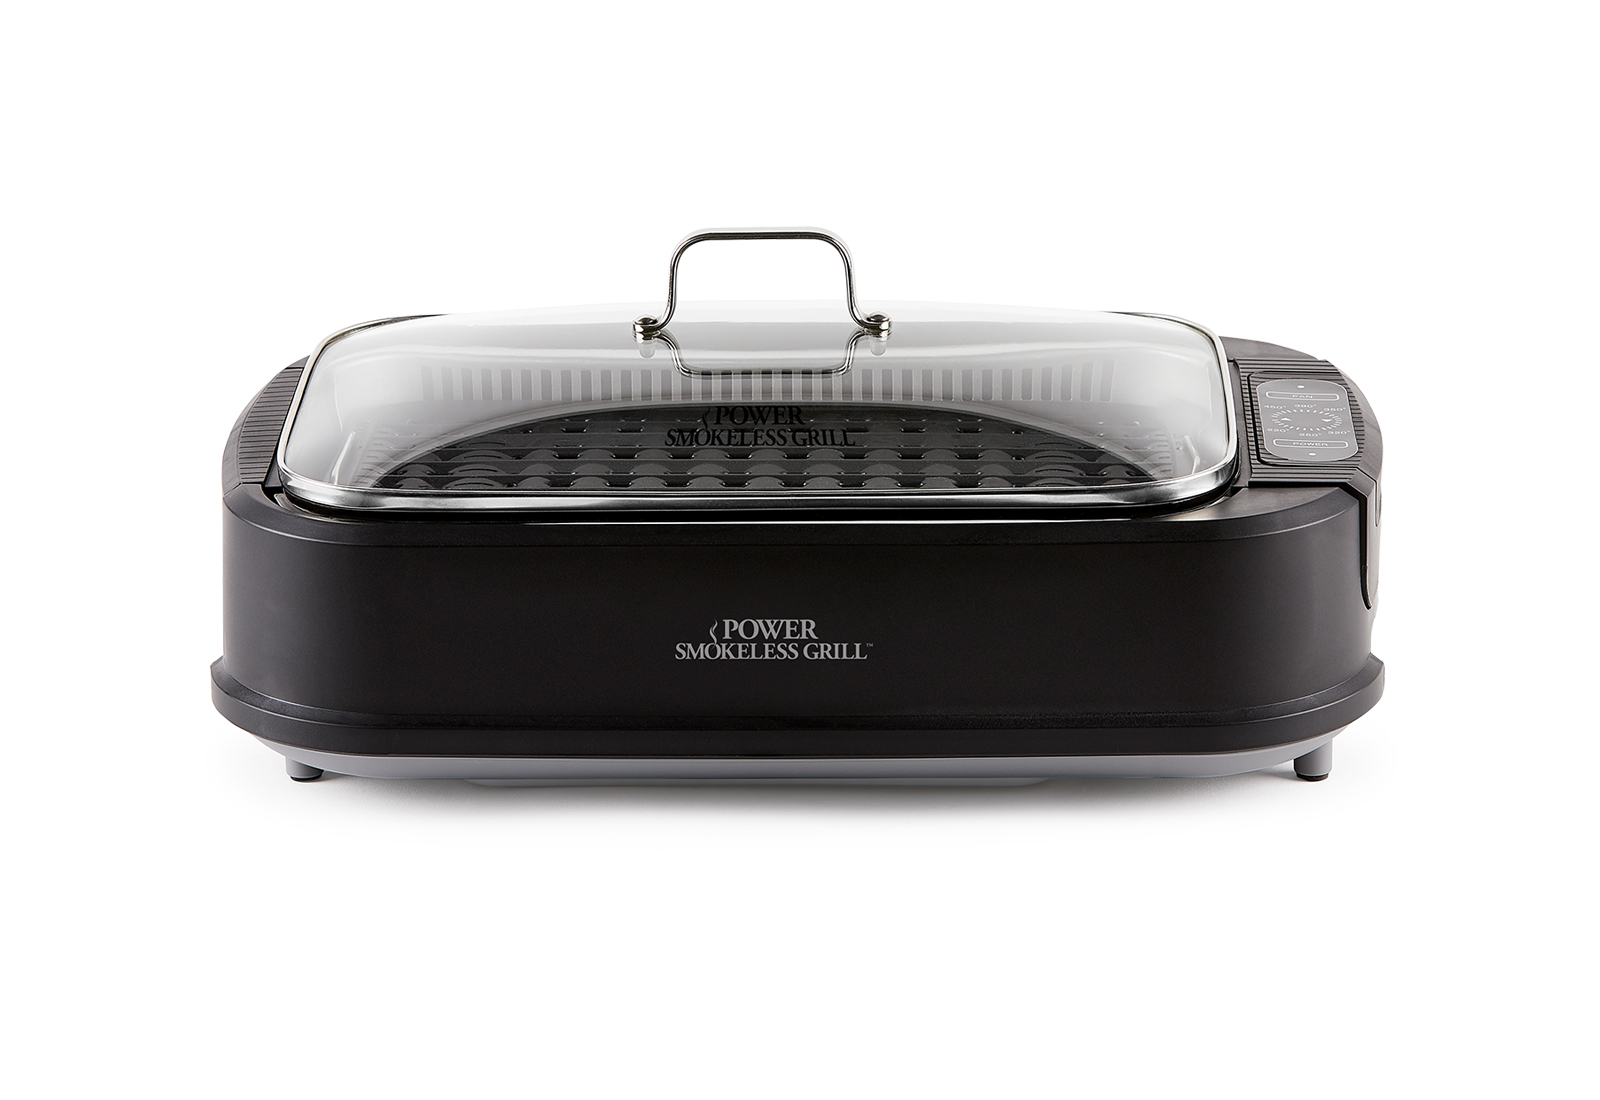 Power Smokeless Grill Product Image